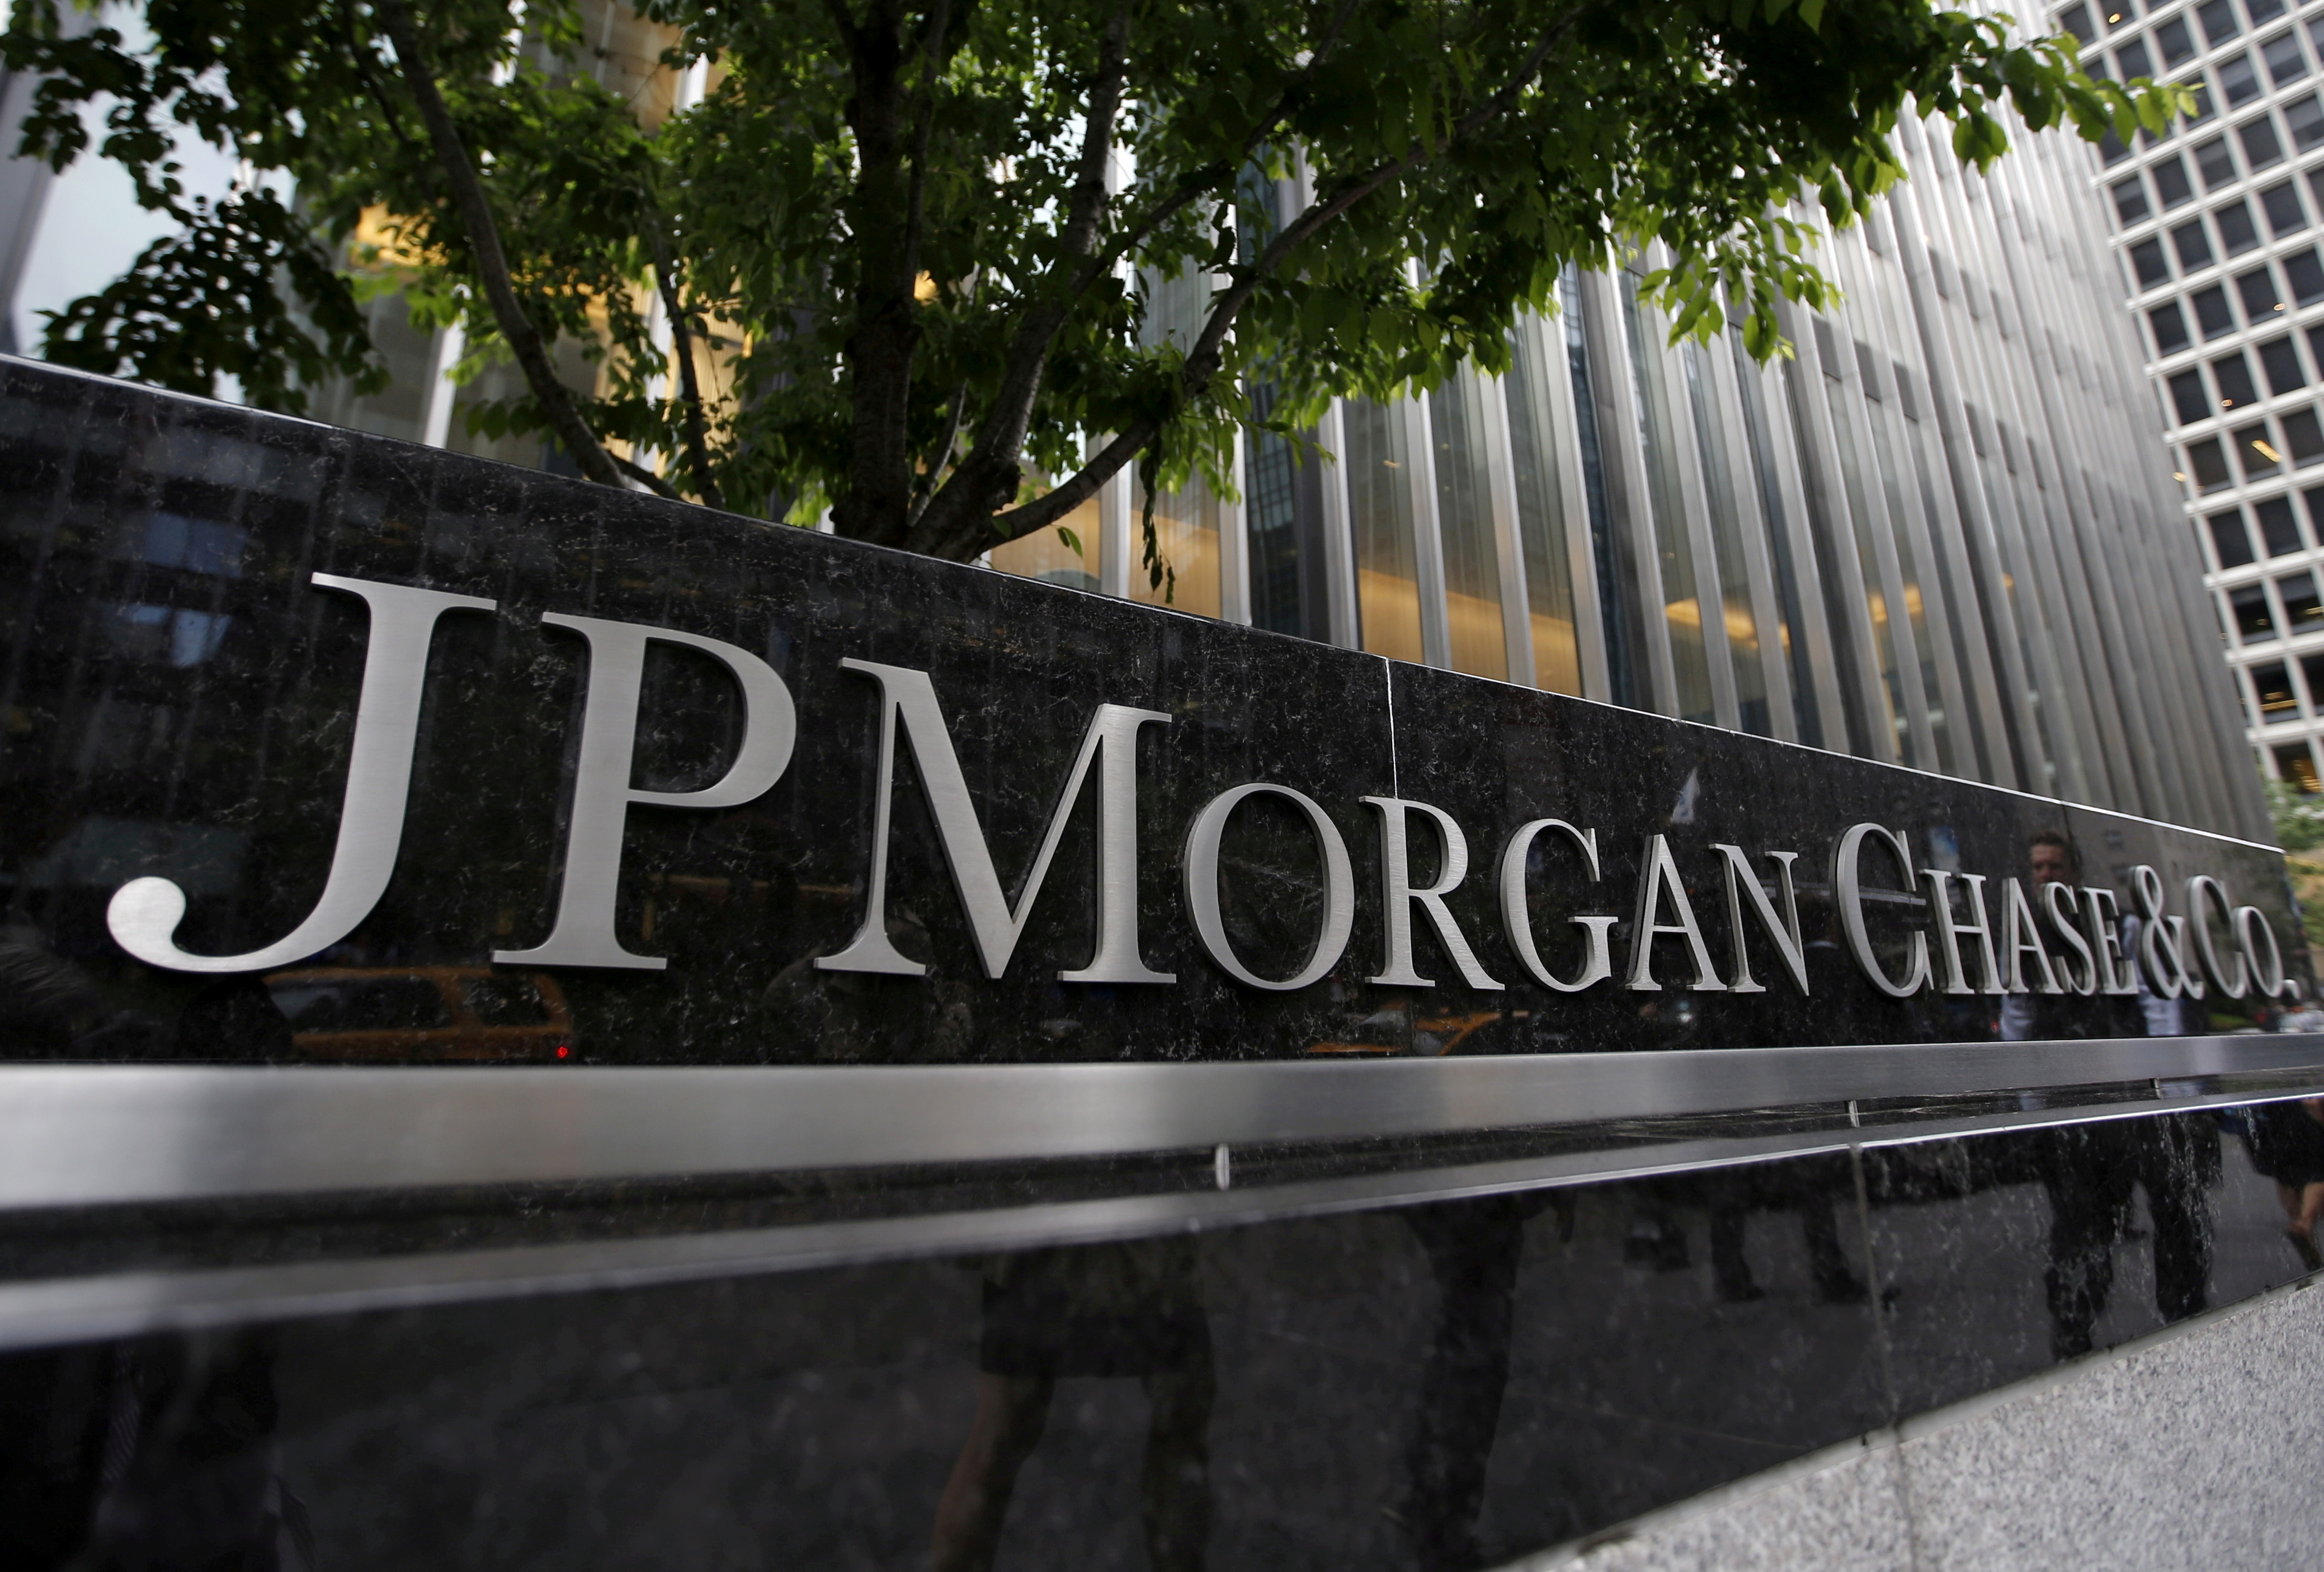 A view of the exterior of the JPMorgan Chase & Co corporate headquarters in New York City May 20, 2015.  REUTERS/Mike Segar